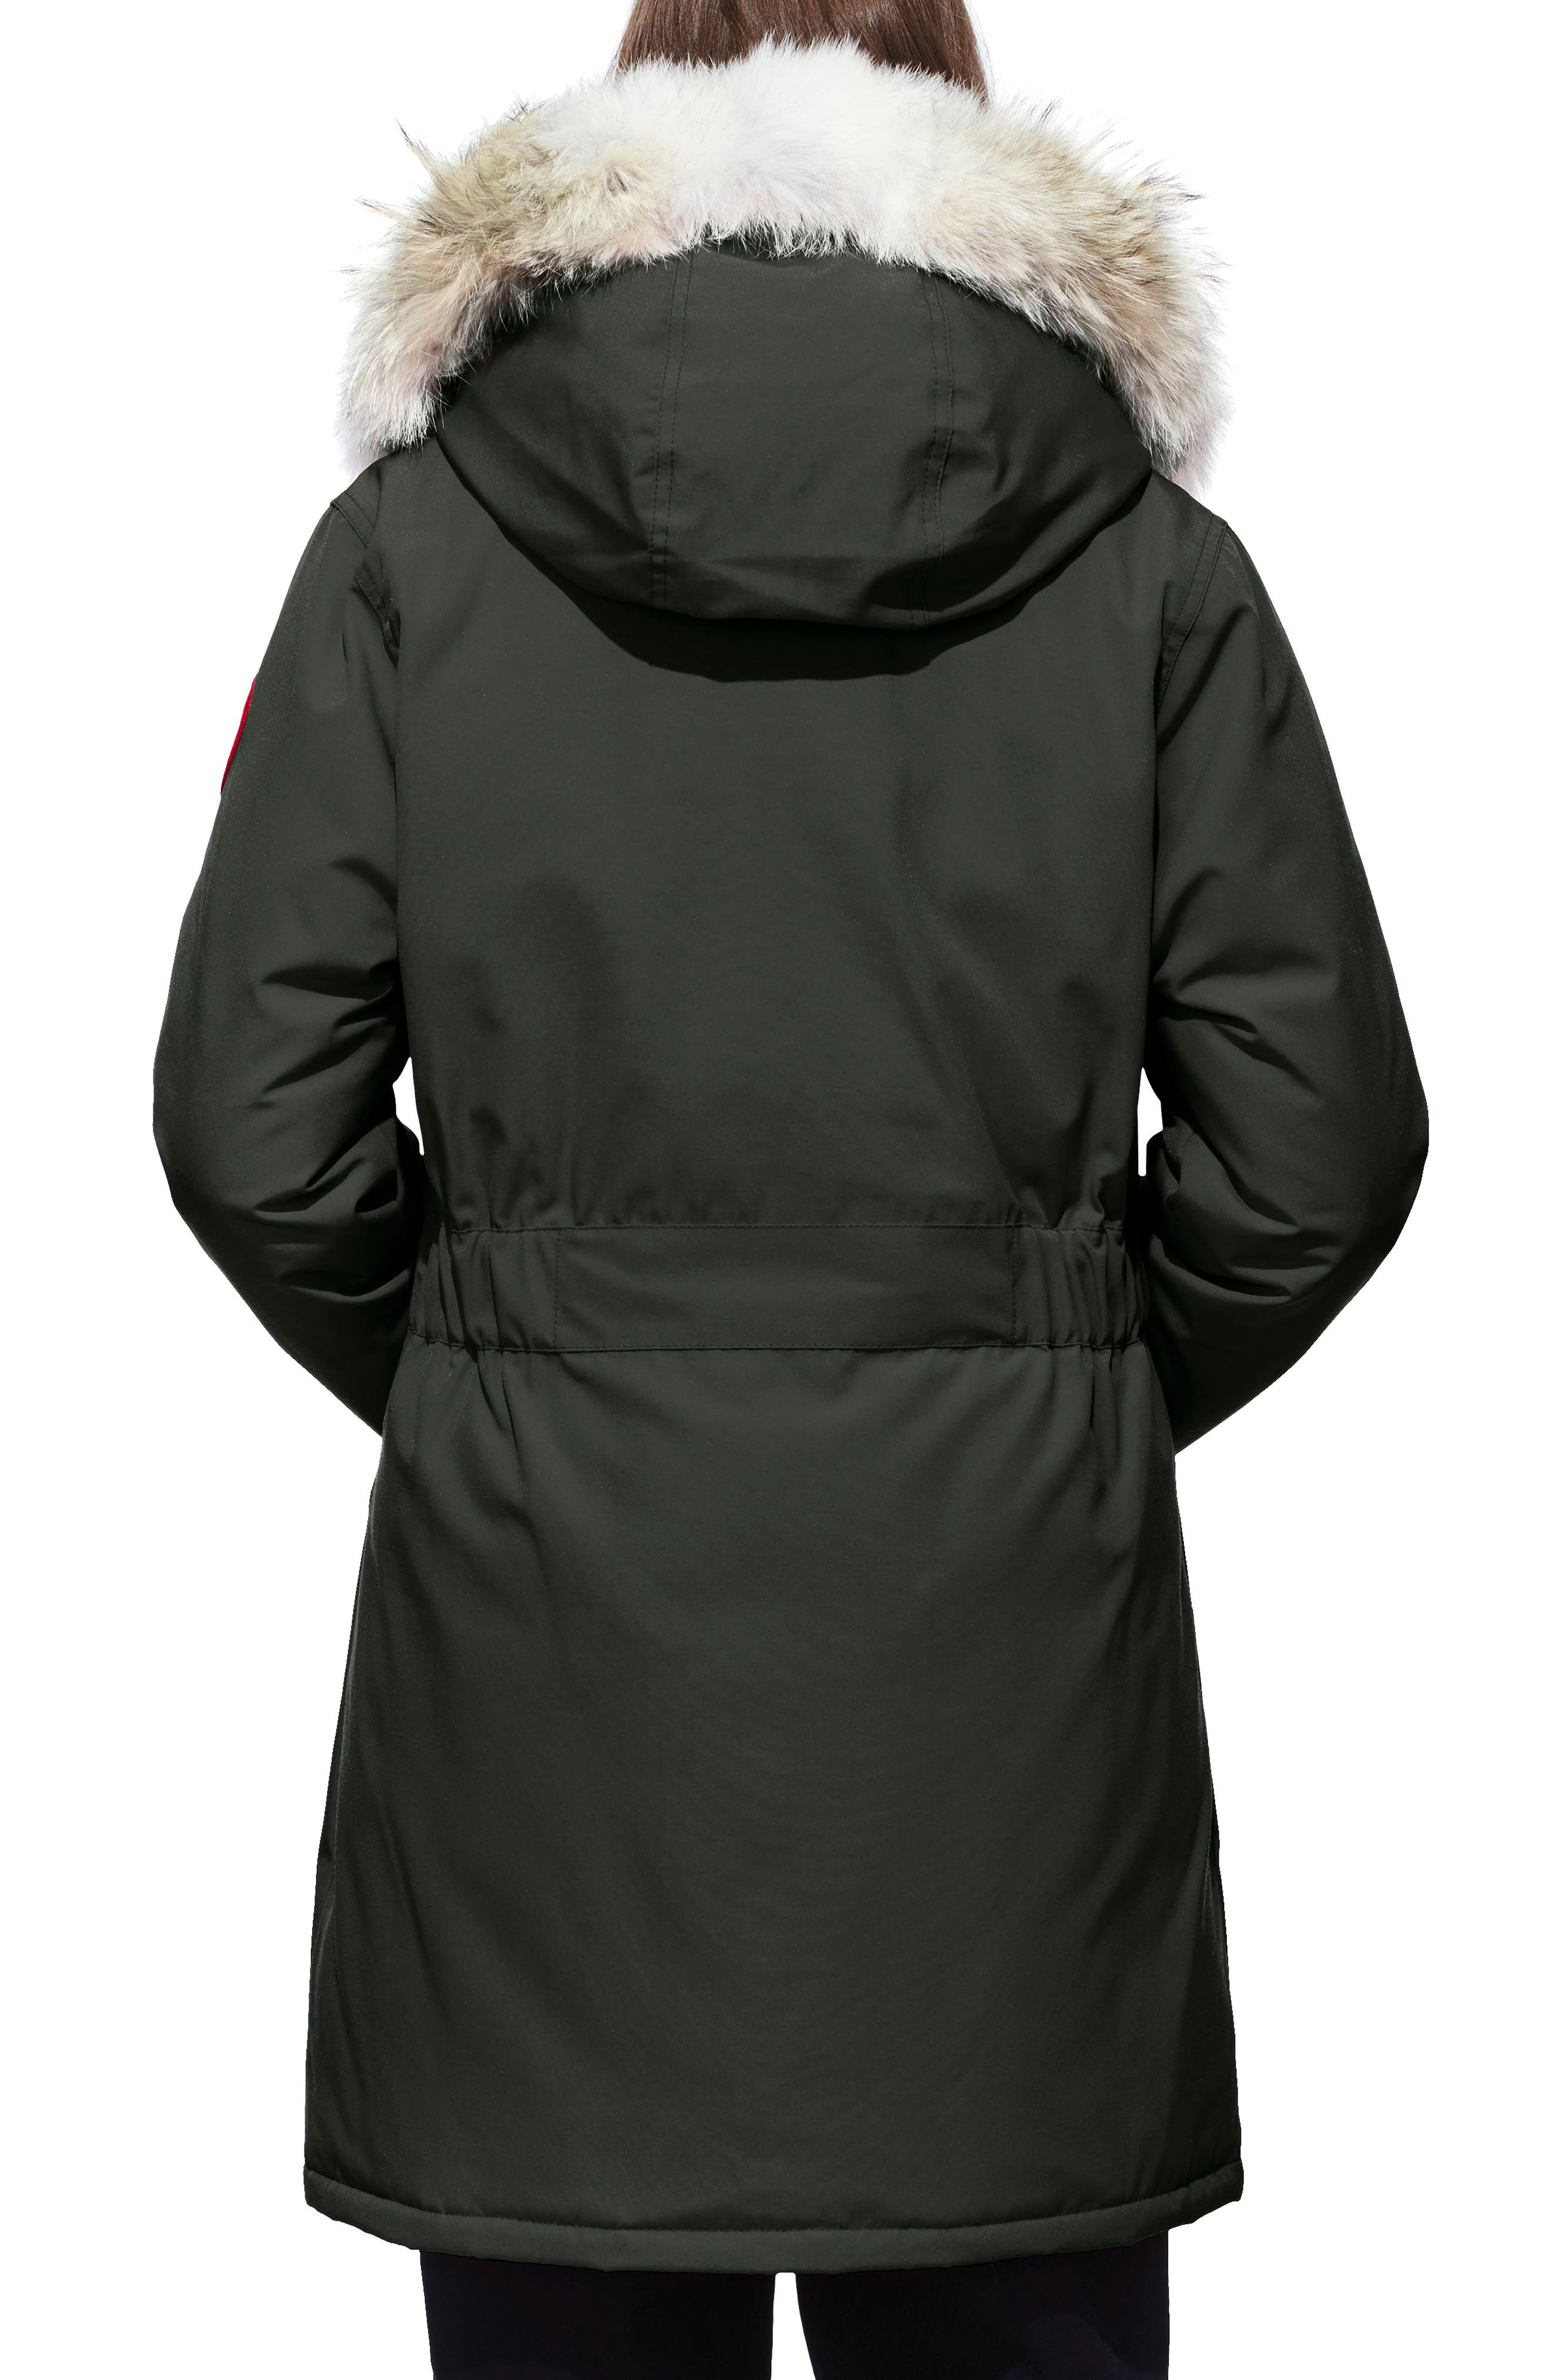 Trillium Fusion Fit Hooded Parka with Genuine Coyote Fur Trim,                             Alternate thumbnail 2, color,                             VOLCANO